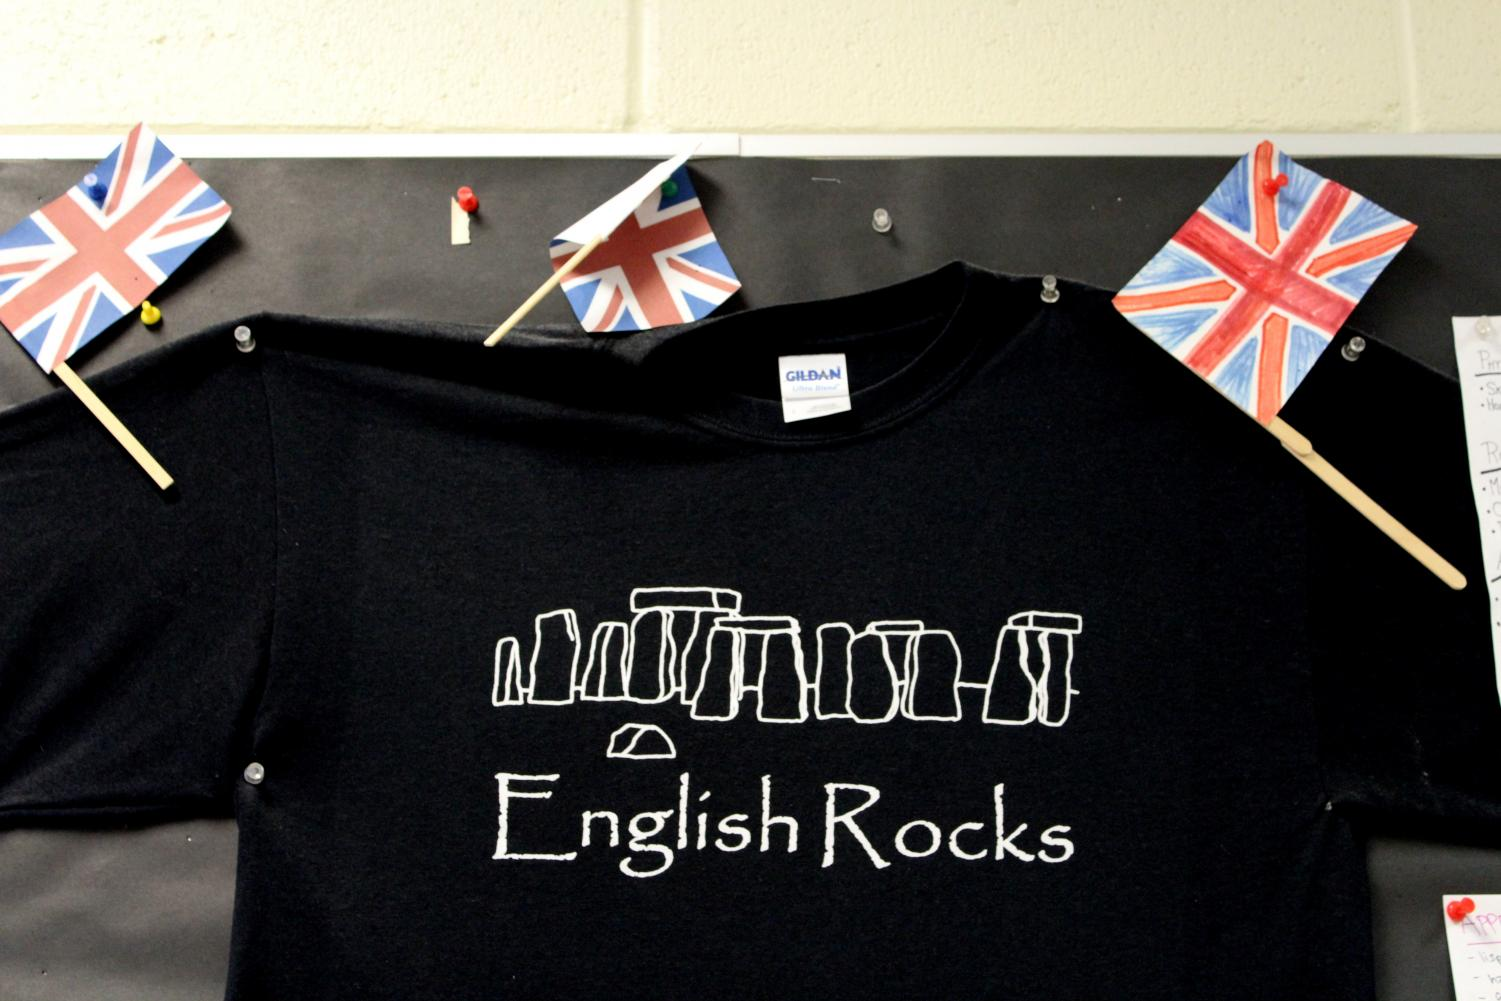 %E2%80%9CEveryone+knows+I%E2%80%99m+the+punster%2C+so+I+have+a+pun+T-shirt+on+my+wall+of+the+English+Stonehenge.+A+teacher%2C+Ms.+Hill%2C+got+me+this+shirt+when+she+was+traveling+and+brought+it+back+for+me+because+she+knows+I+love+puns.%E2%80%9D+-Steve+Lavelle